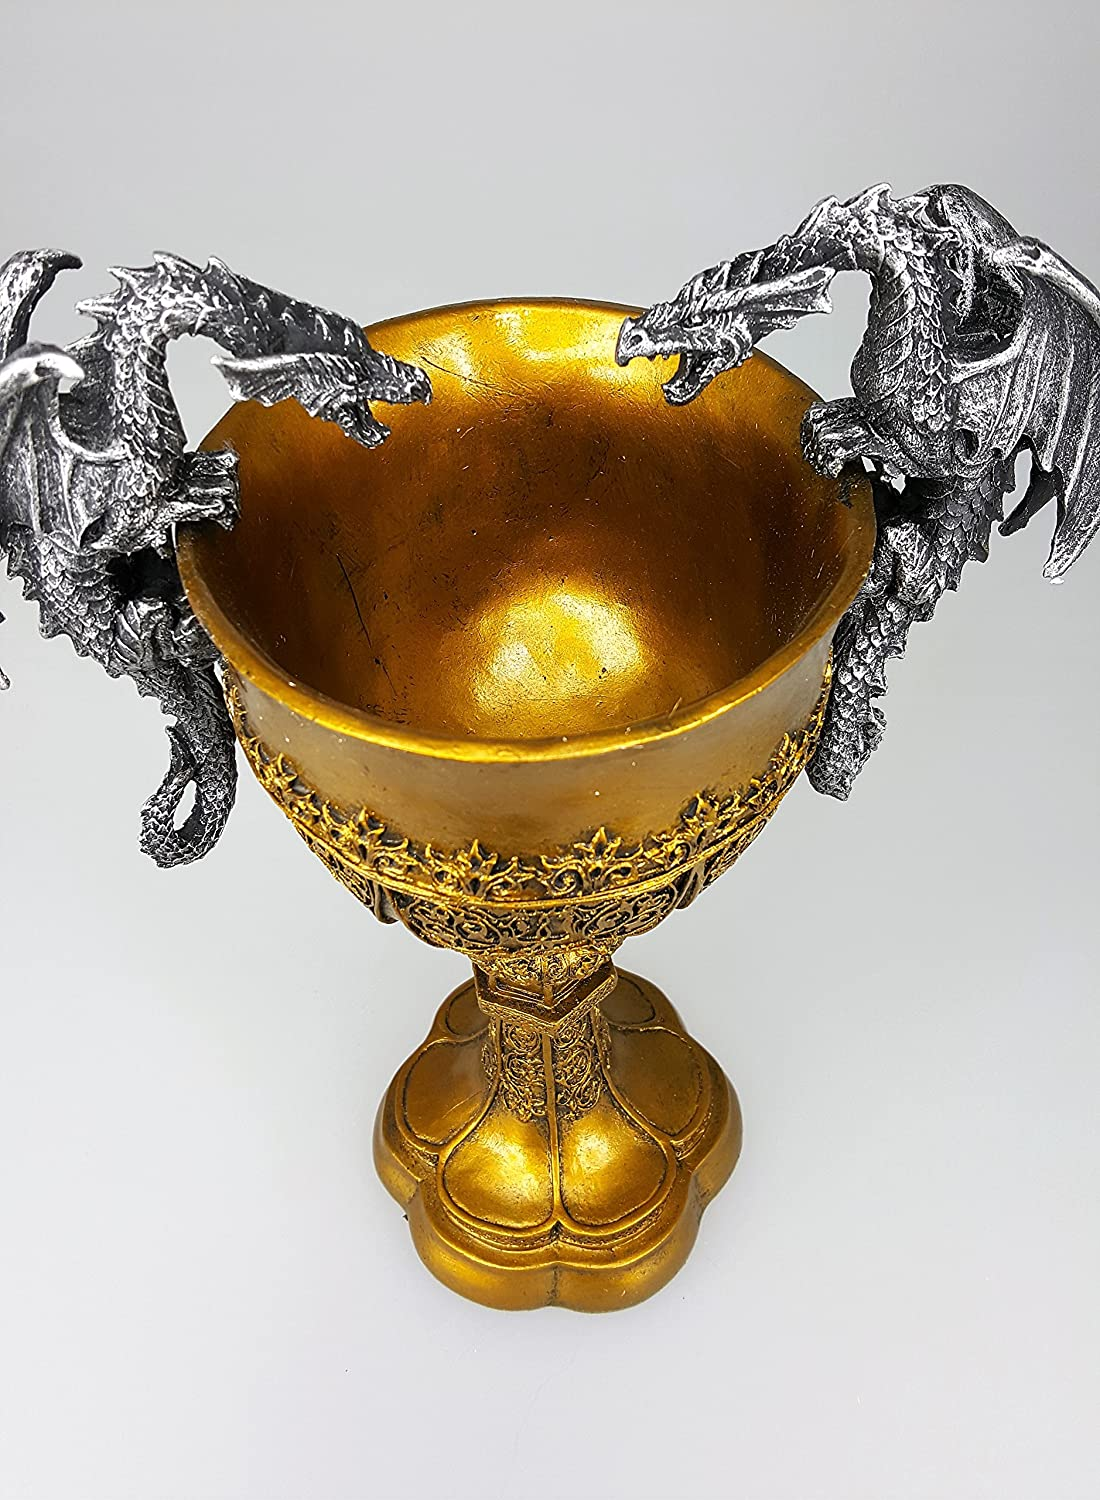 Pacific Giftware King Arthurs Fantasy Golden Chalice with Dual Dragon Wine Goblet Sculptural Decor